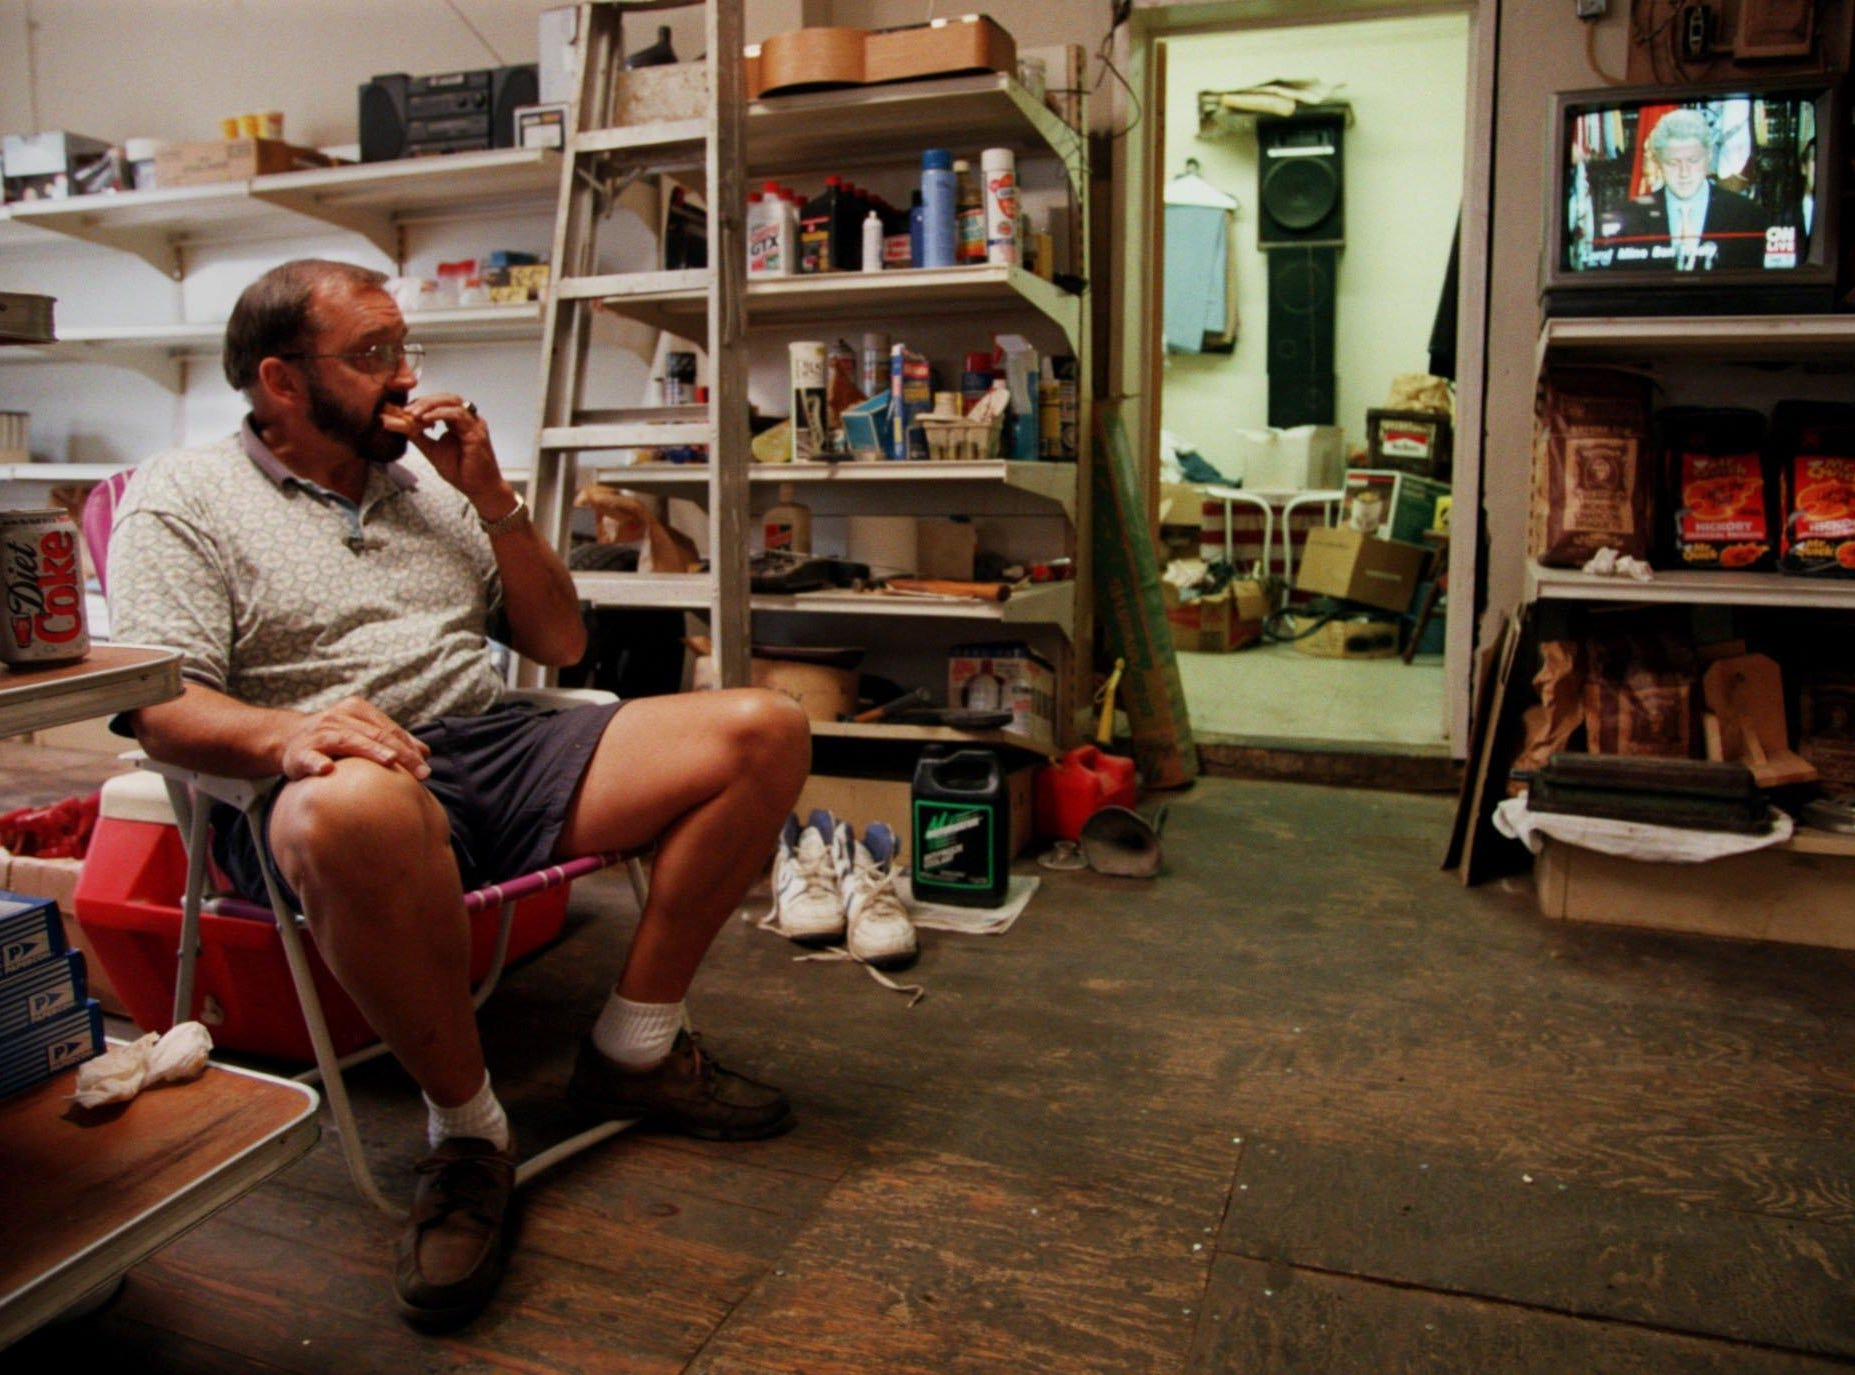 Joe Demarest, a regular customer at Terry's Market, relaxed with a freshly made sandwich while watching TV in the small Gallatin store.